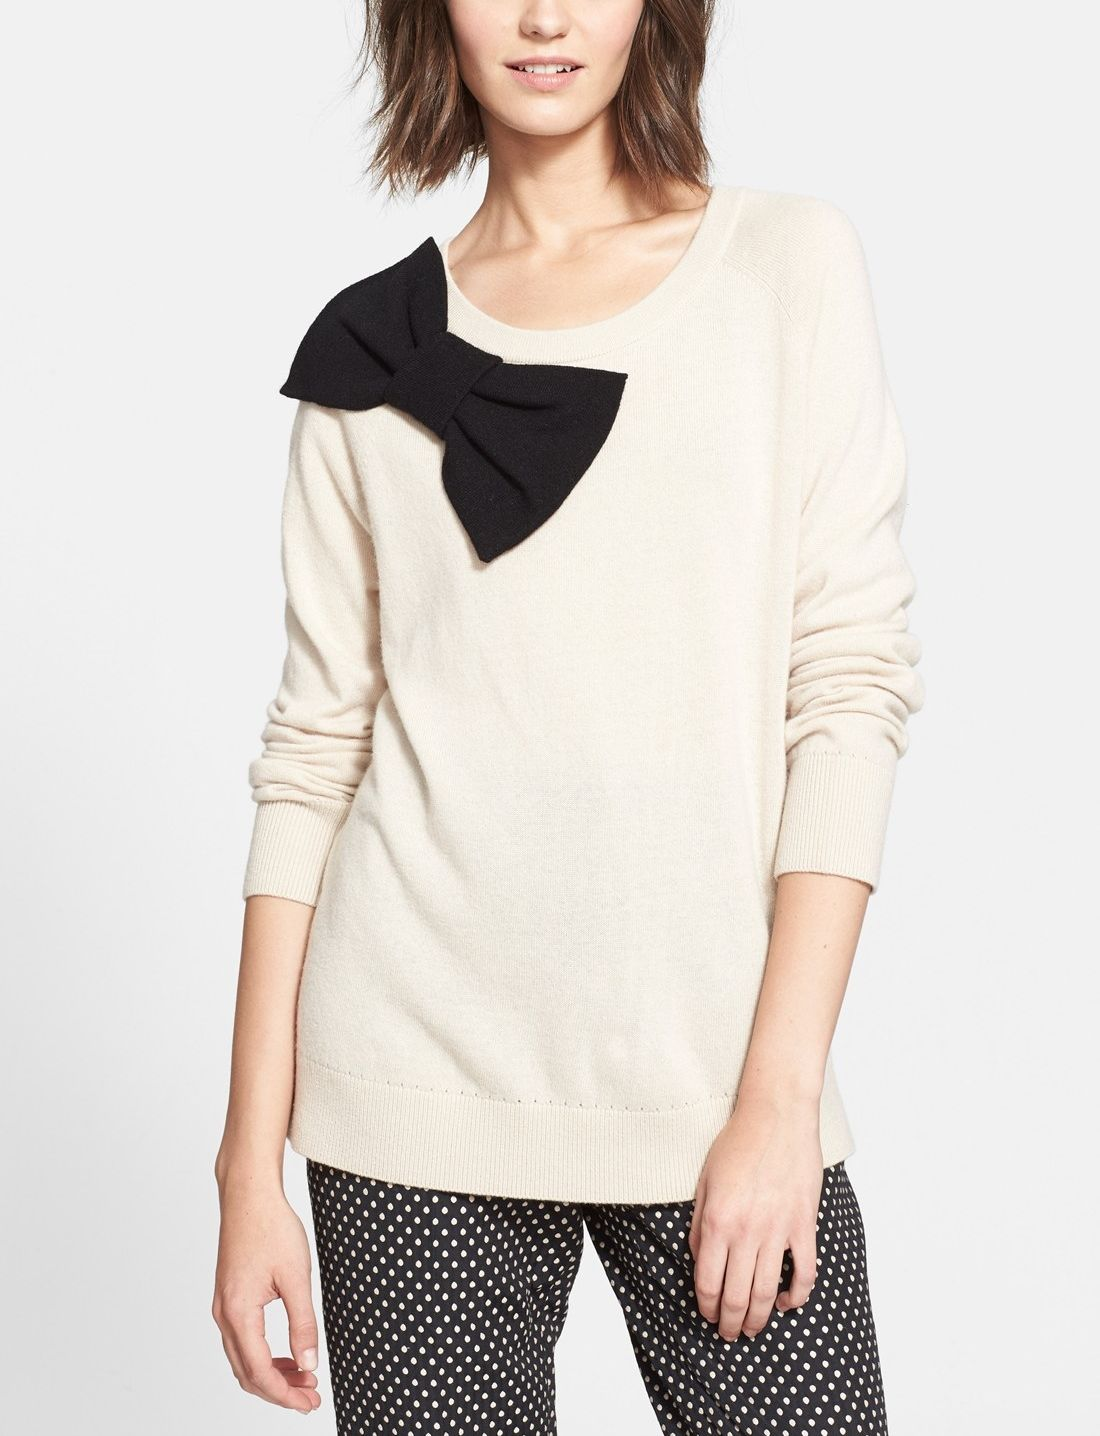 Bows are perfect for every season. Absolutely adore this Kate Spade bow sweater!